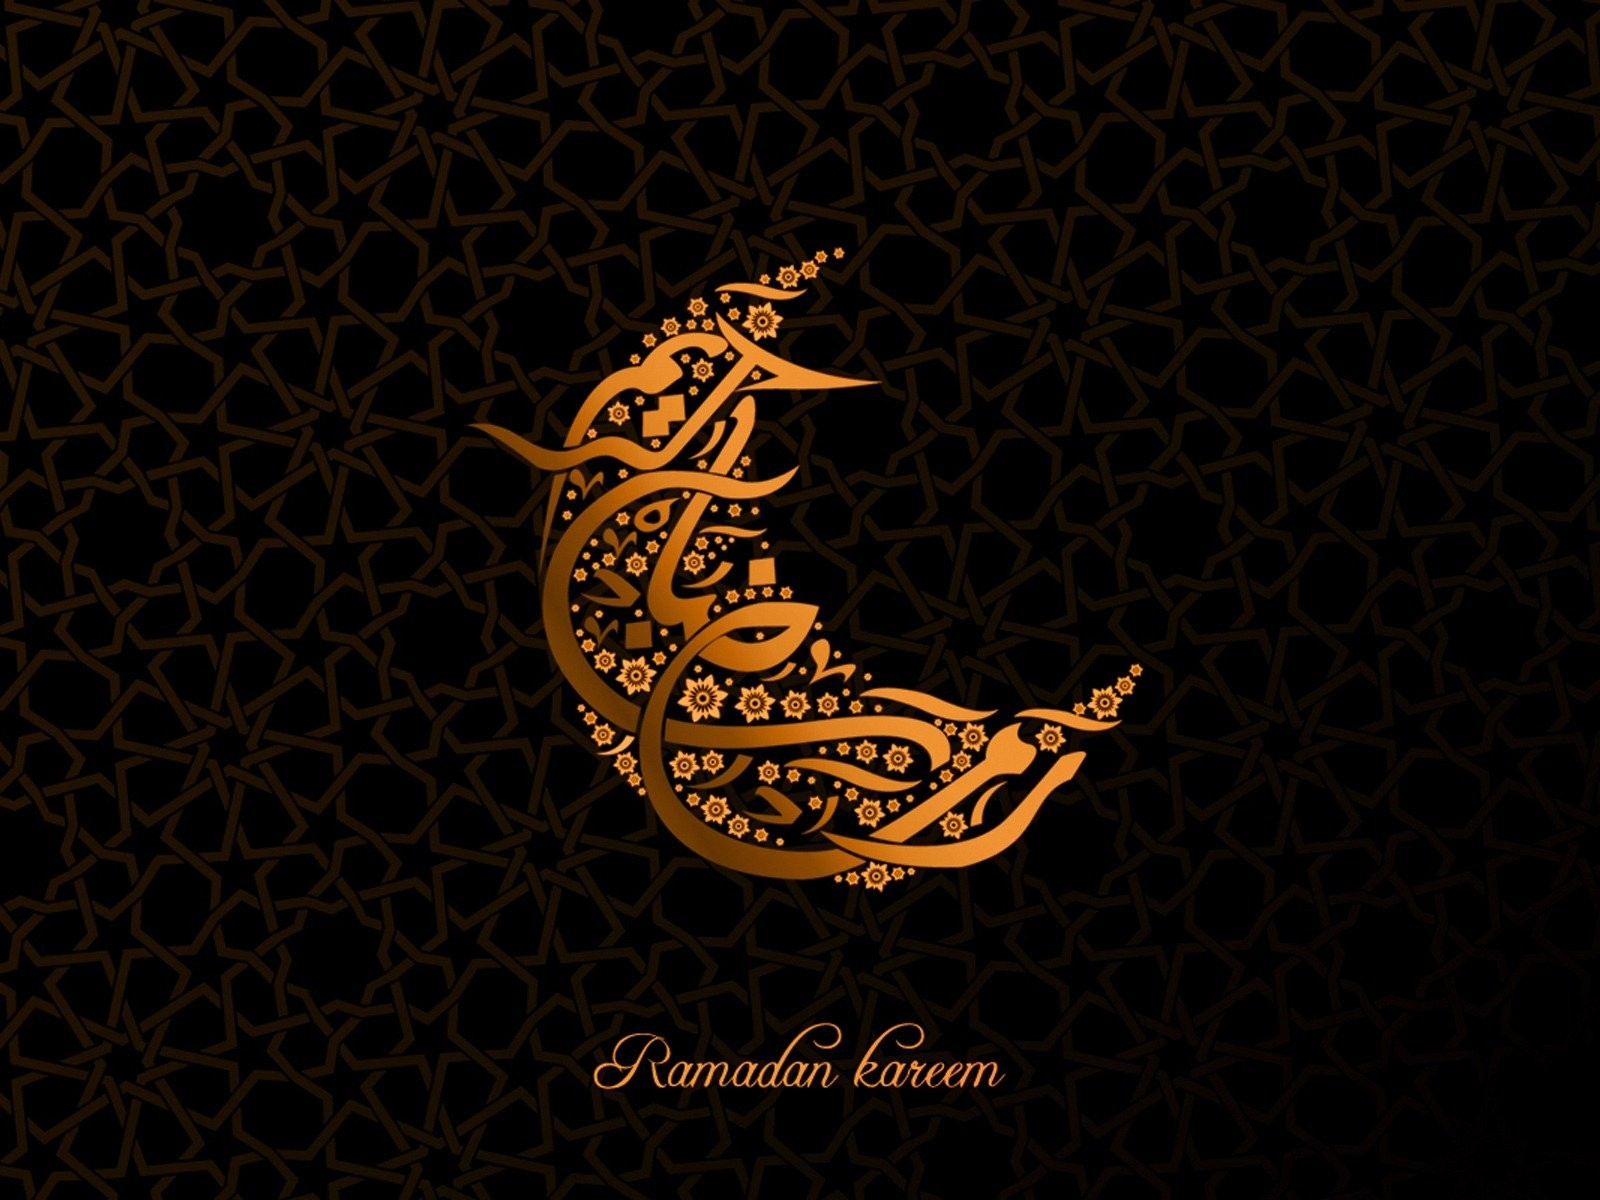 Hd wallpaper ramzan mubarak - Ramadan Mubarak Hd Wallpaper 2017 Free Download